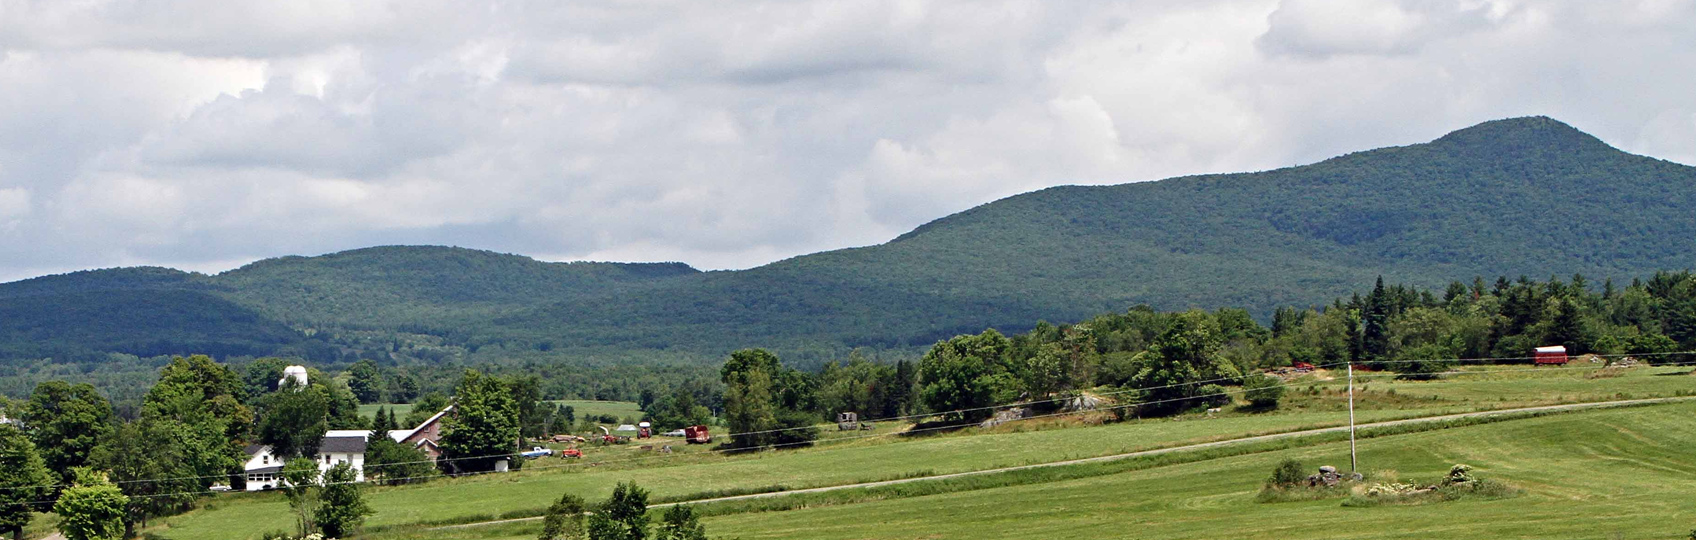 berkshire vermont real estate